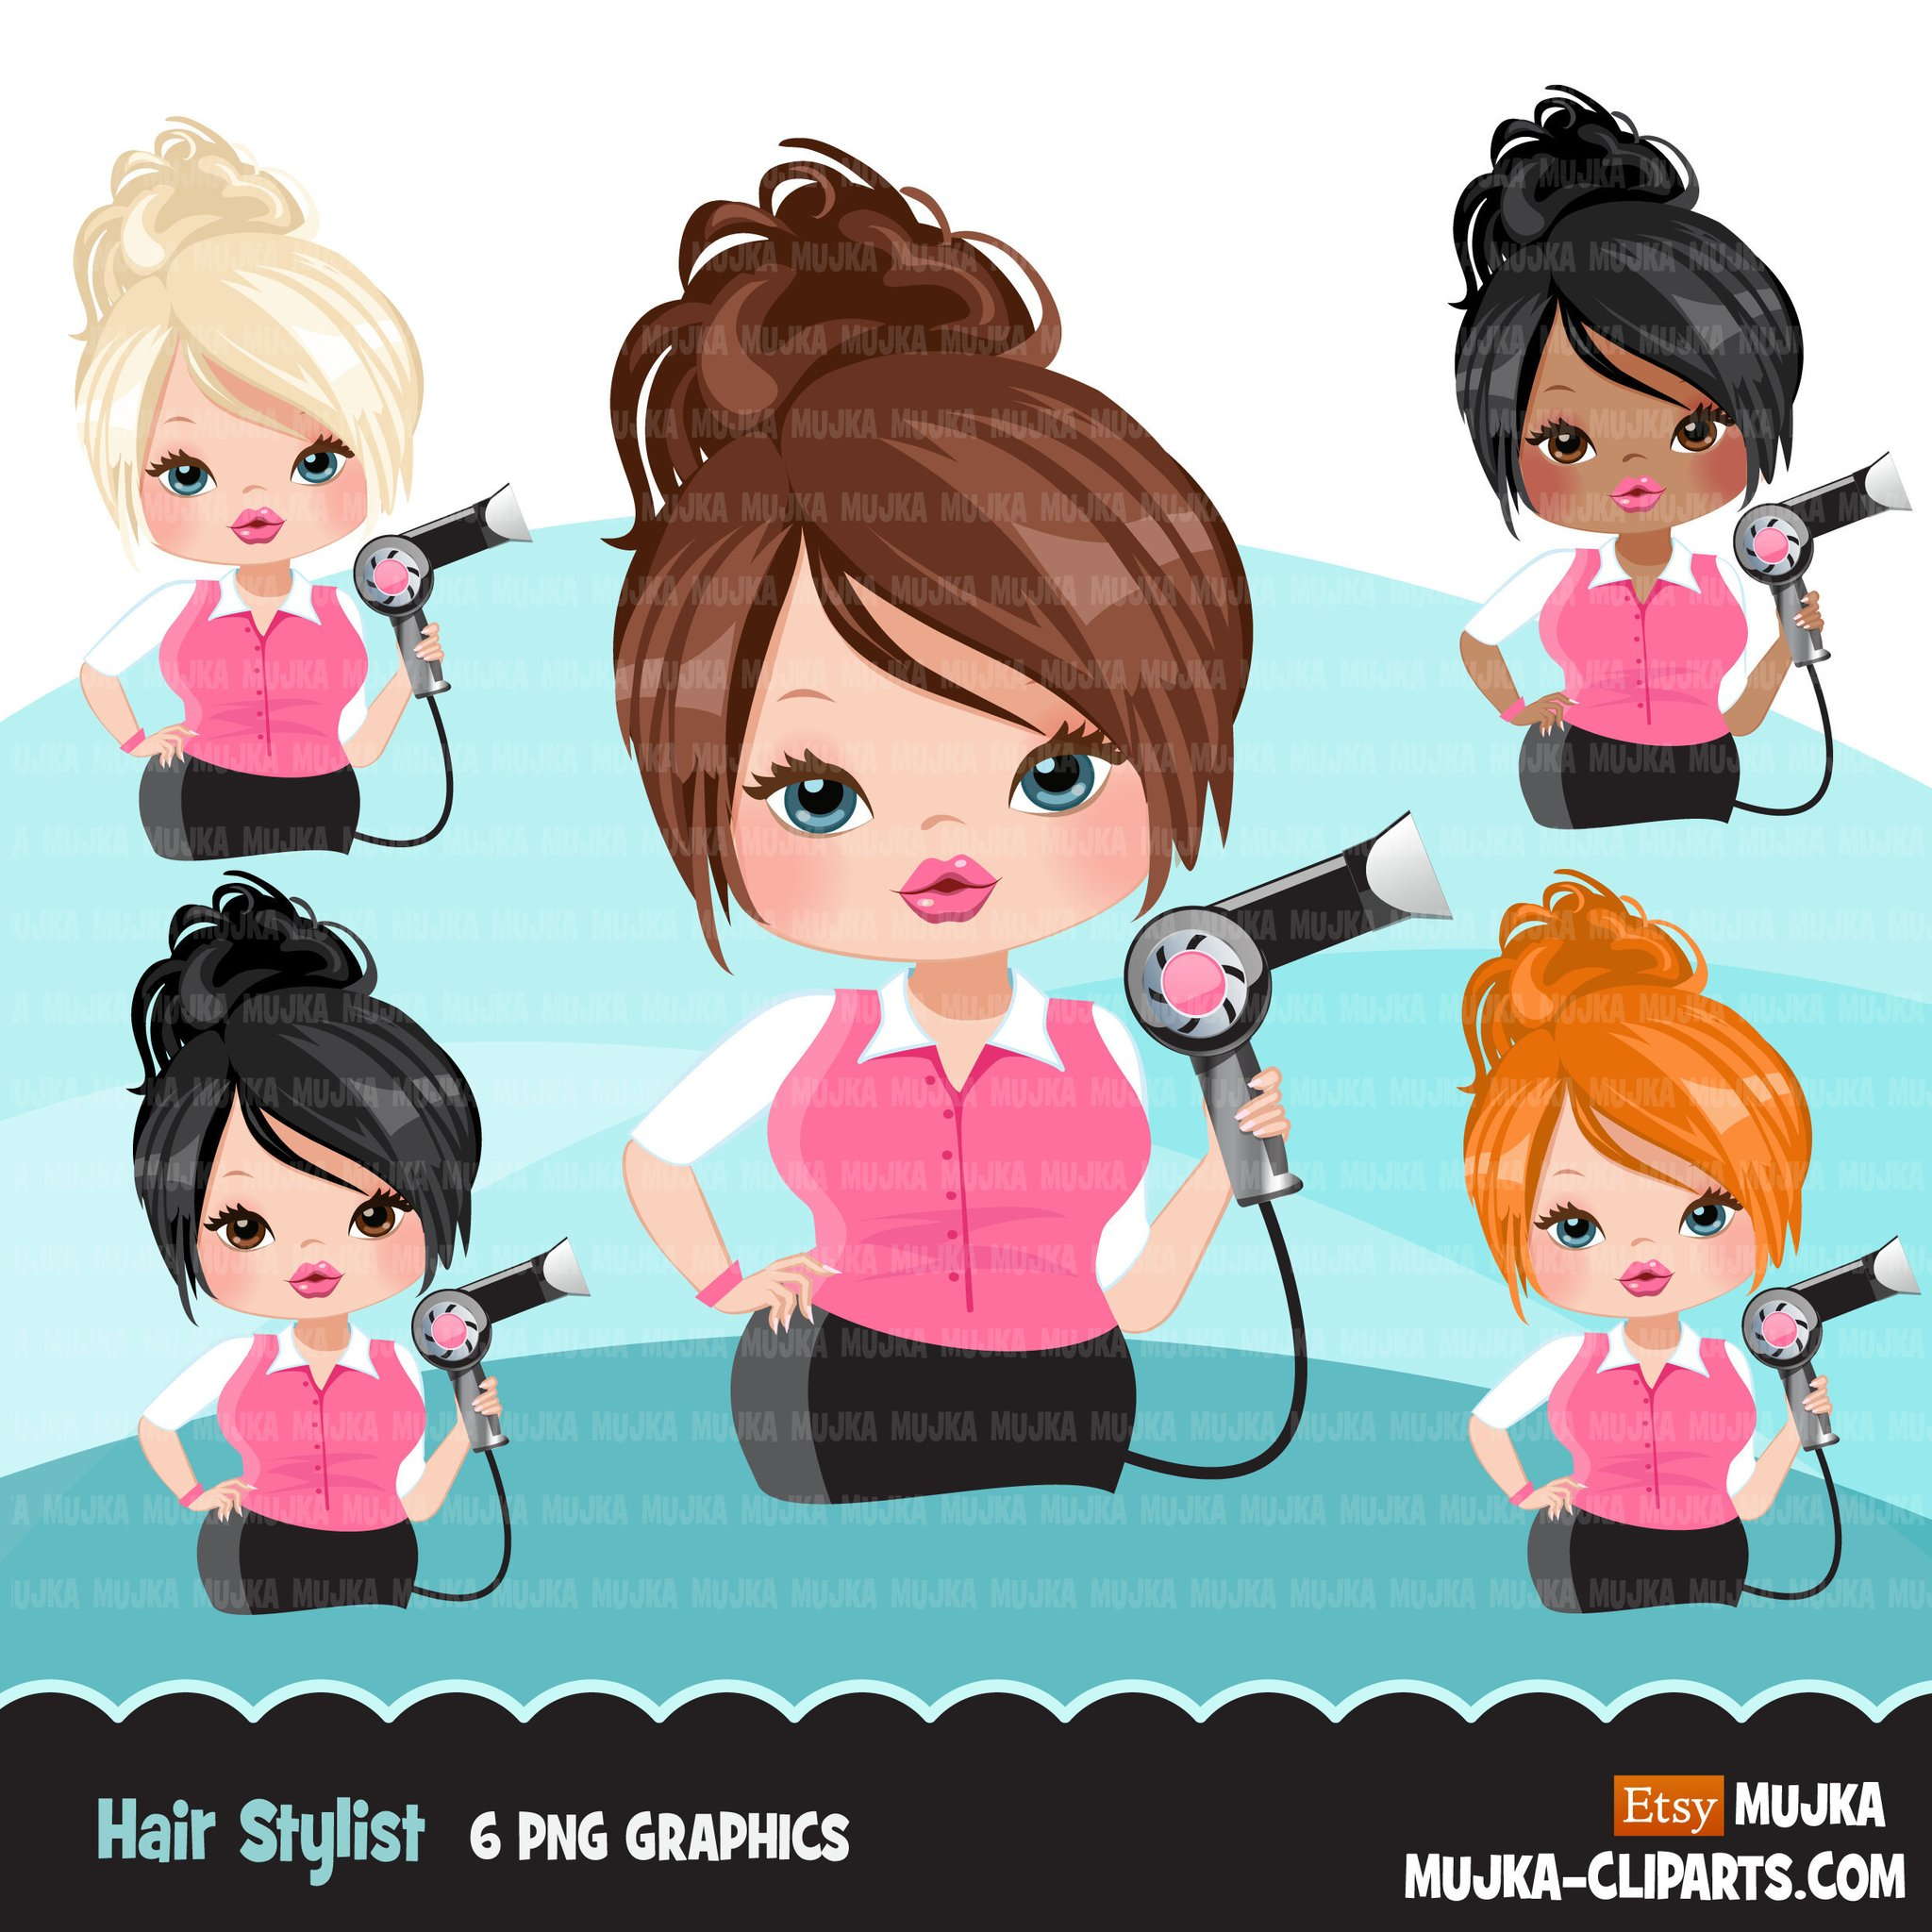 Hair stylist woman clipart avatar with hairdryer, print and cut, shop logo  boss hairdresser clip art graphics.